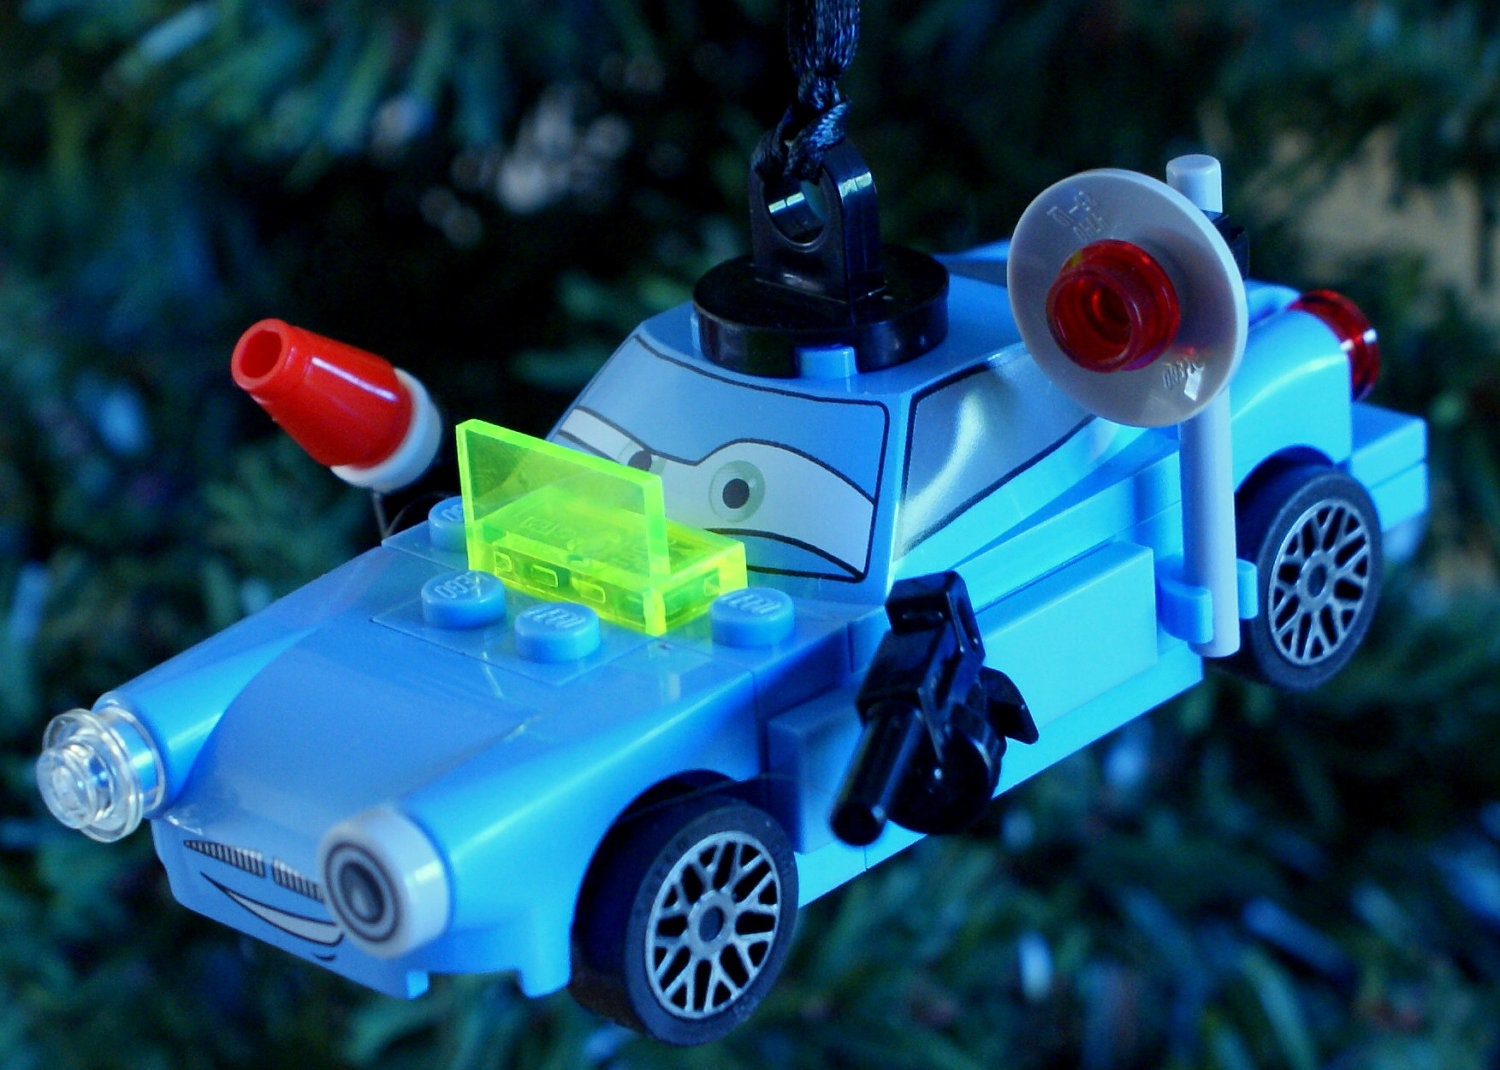 LEGO Disney Pixar Cars Finn McMissile Christmas Ornament